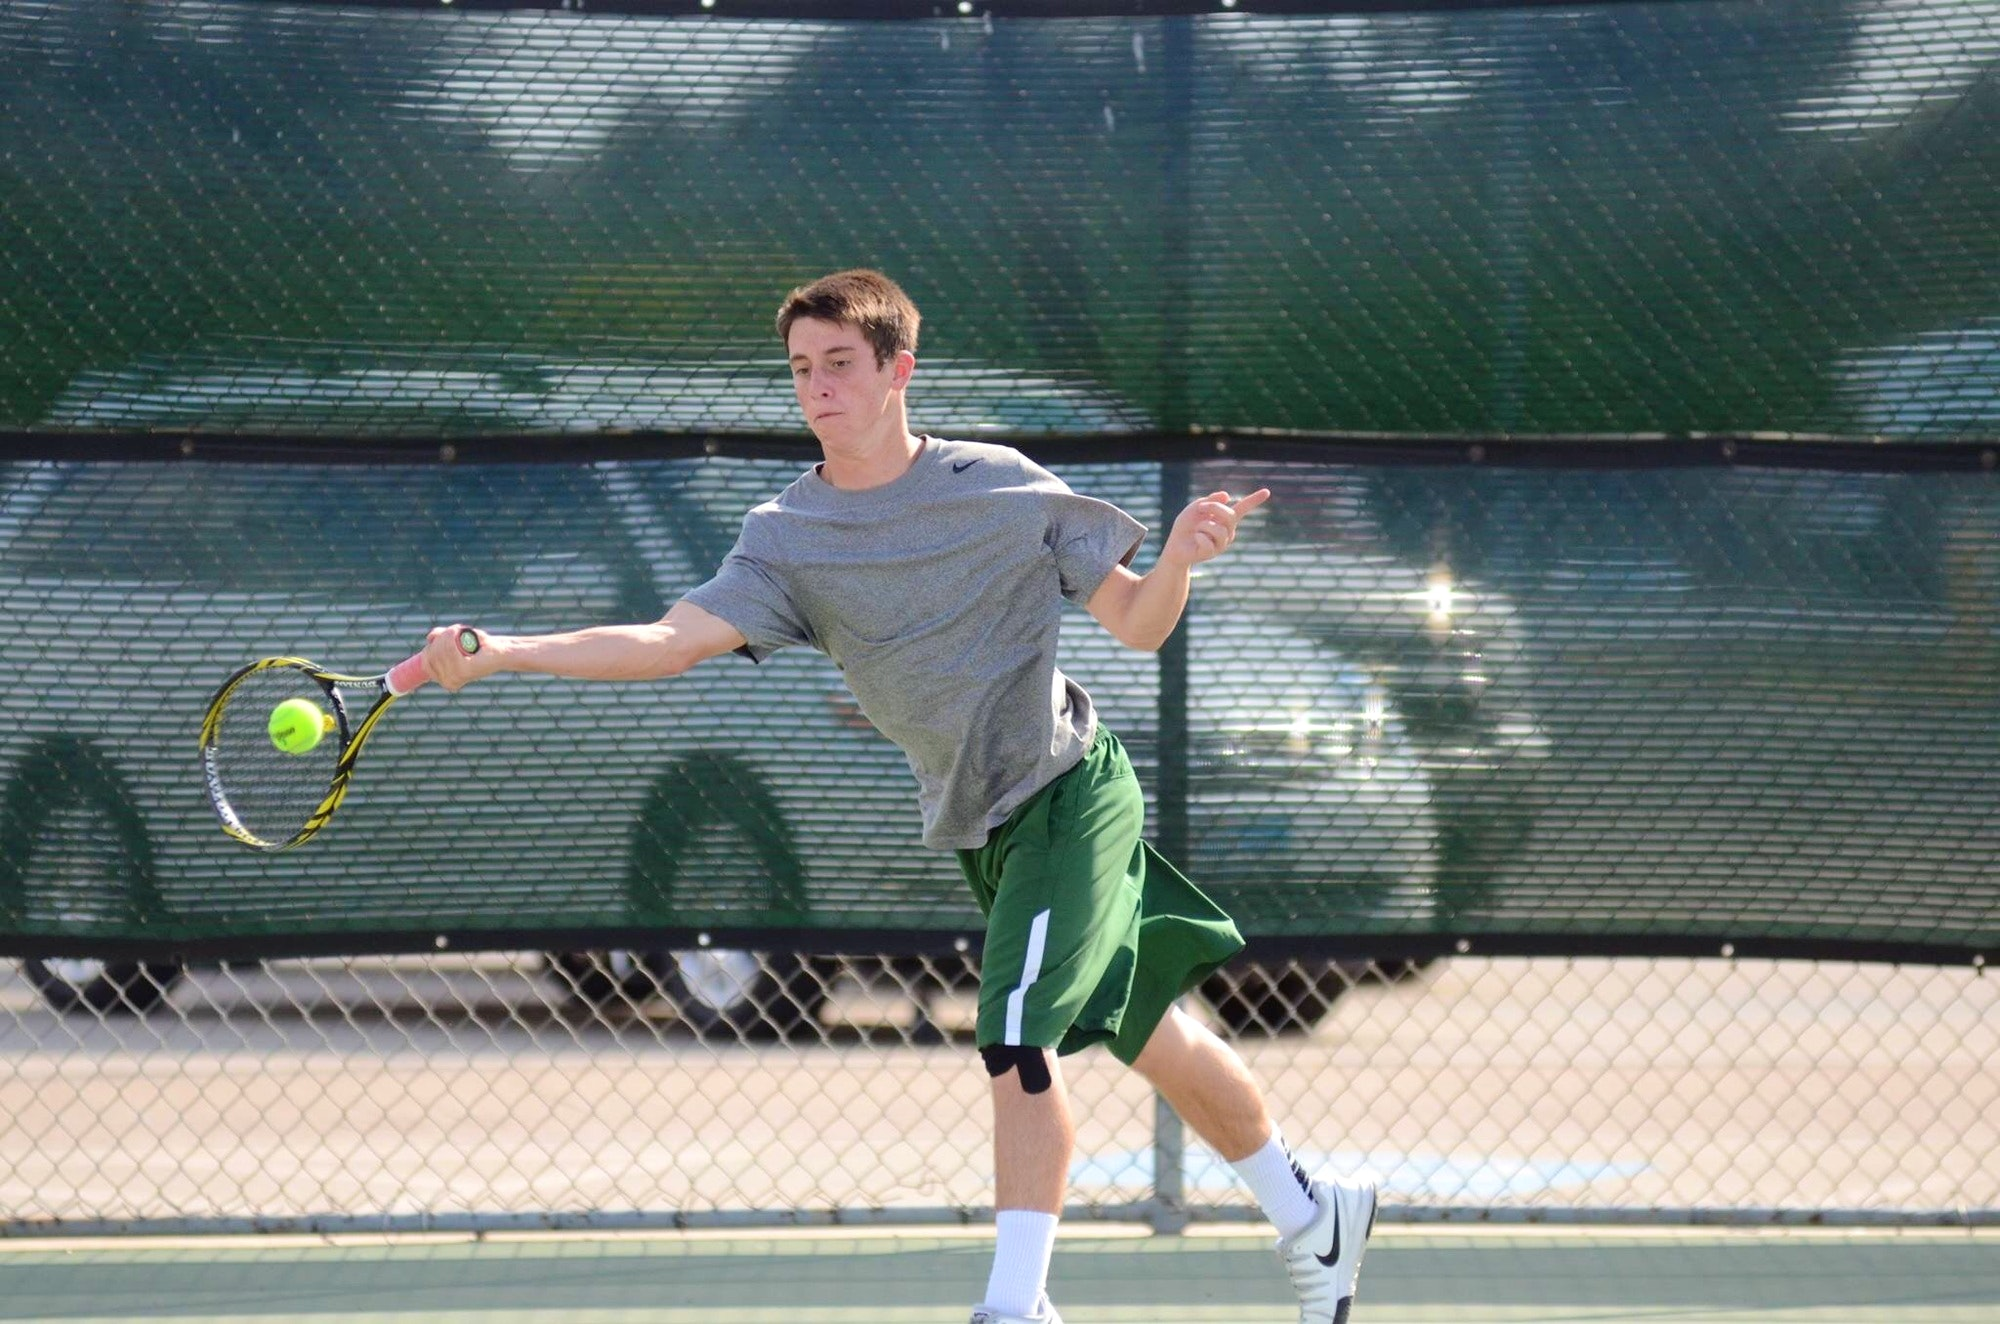 Elijah C. teaches tennis lessons in New Braunfels , TX